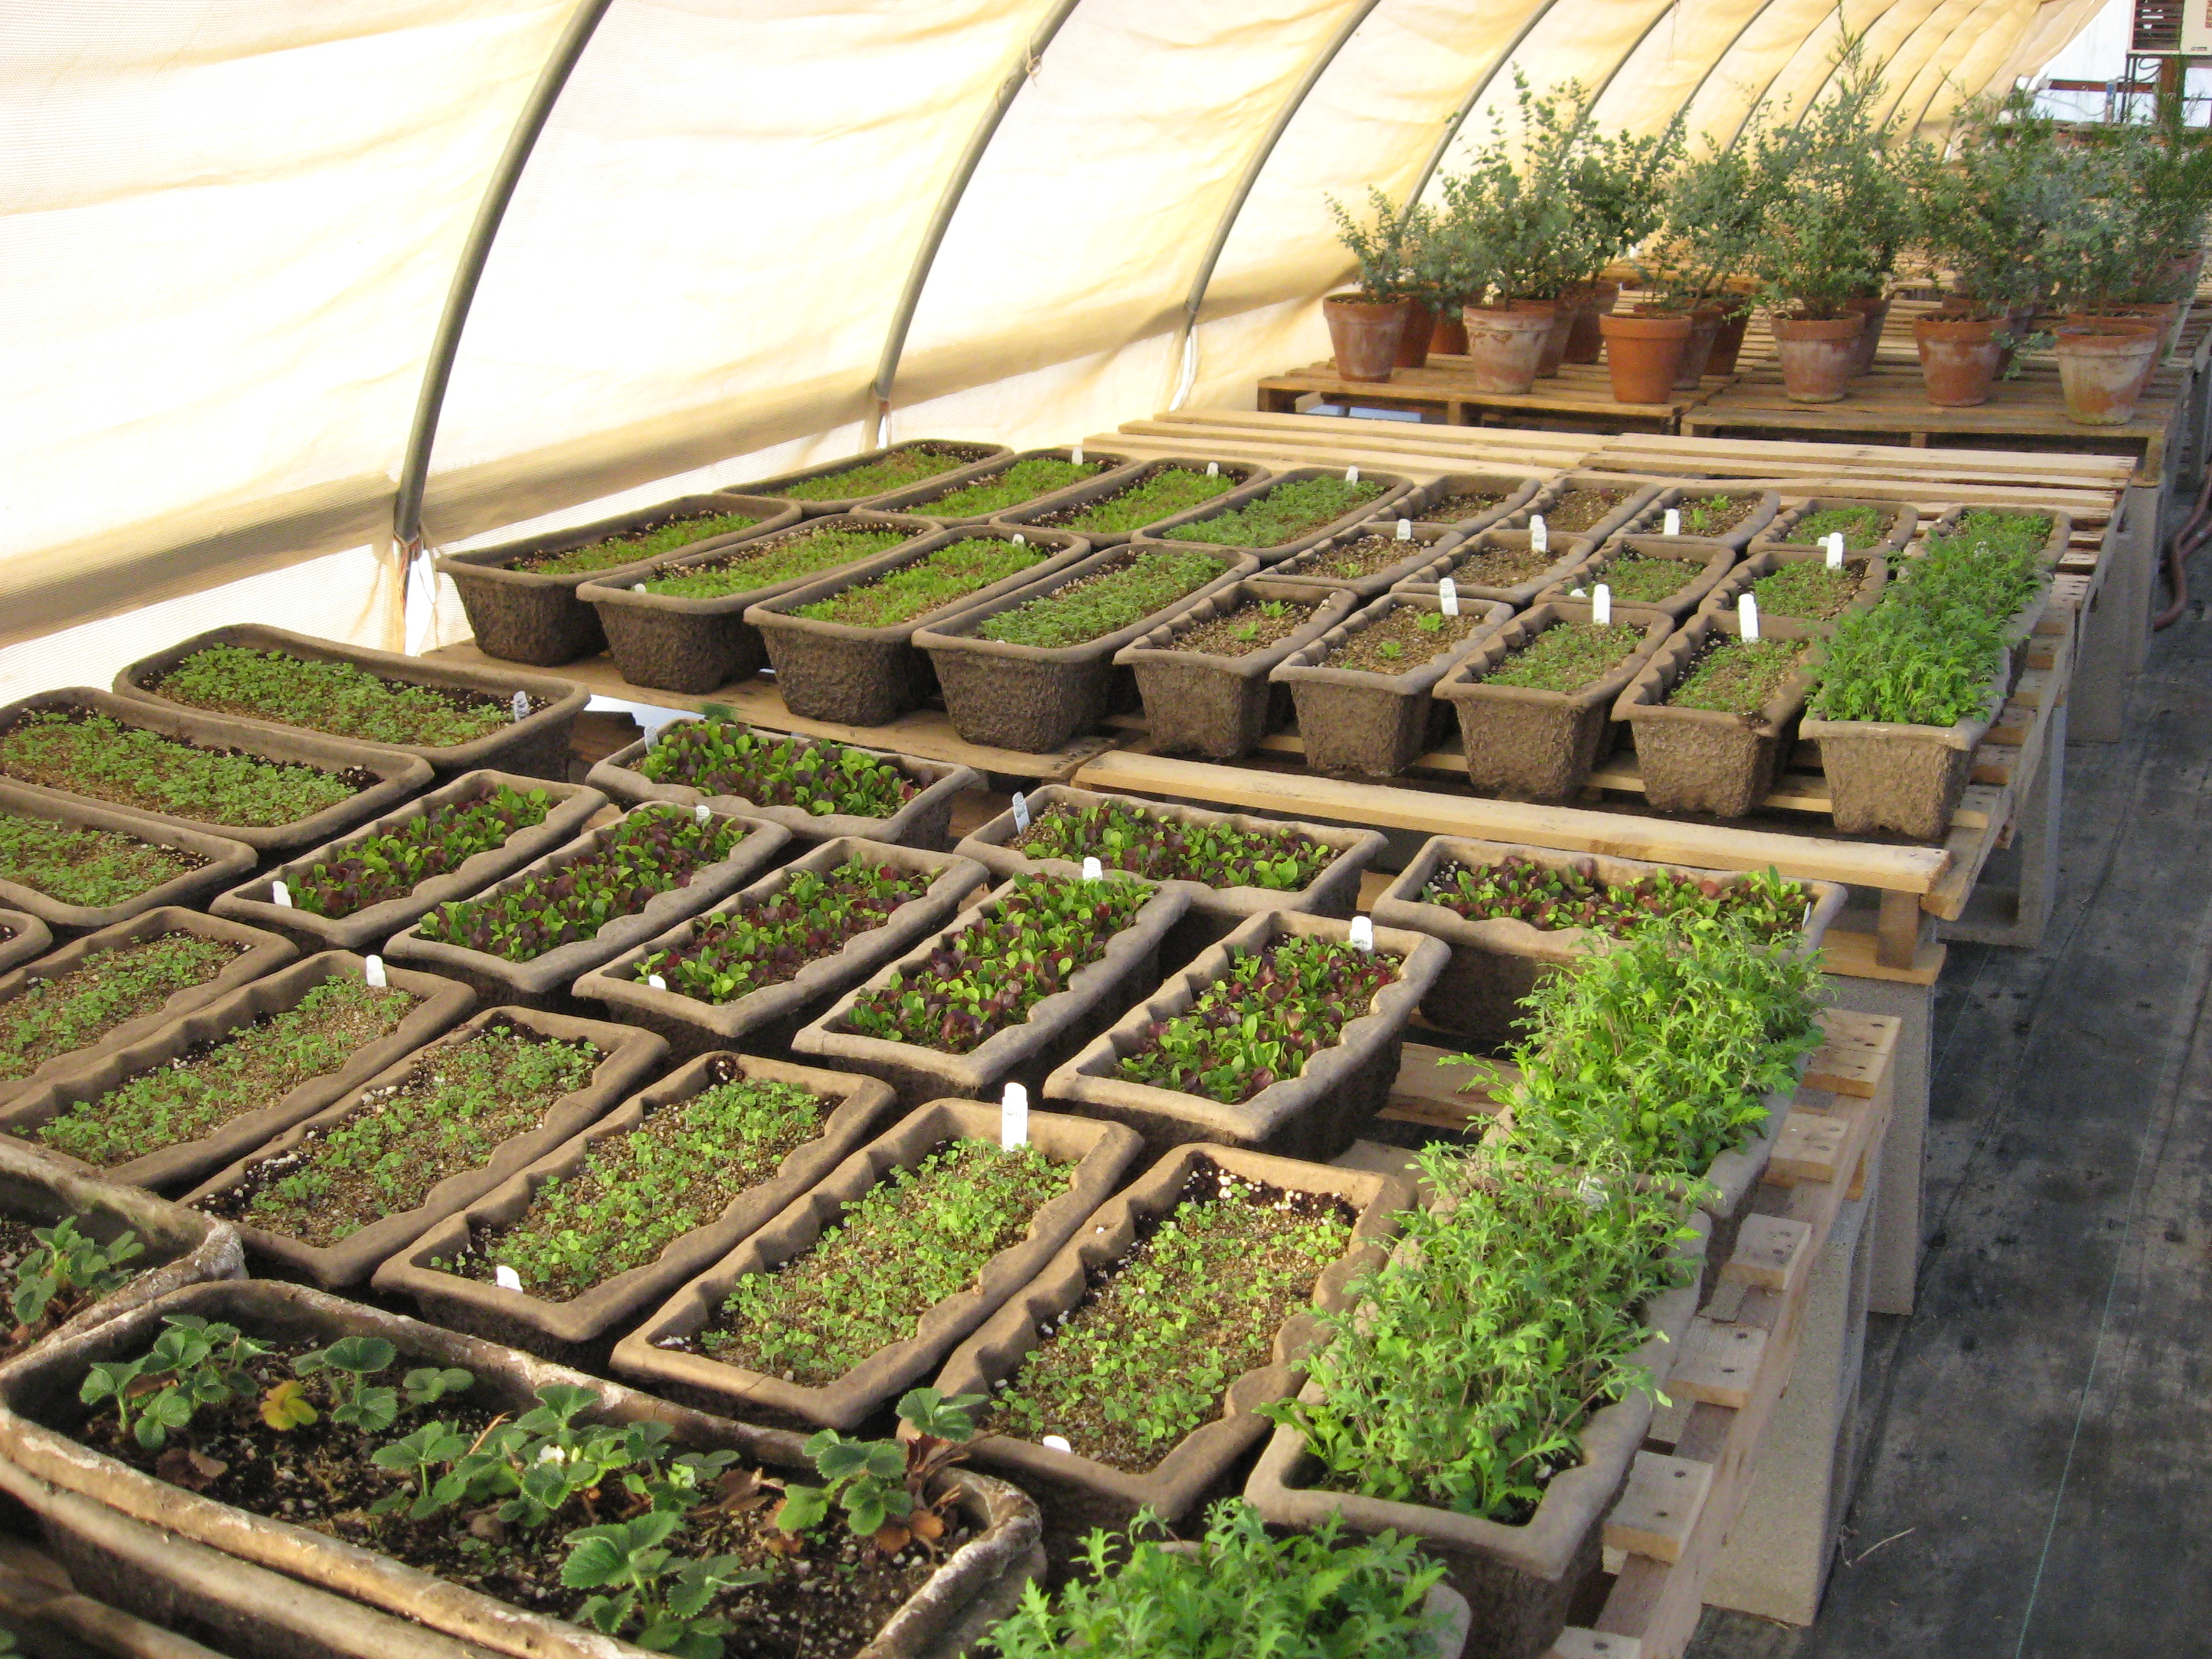 Uncategorized | Desert Canyon Farm Green Thoughts Blog | Page 30